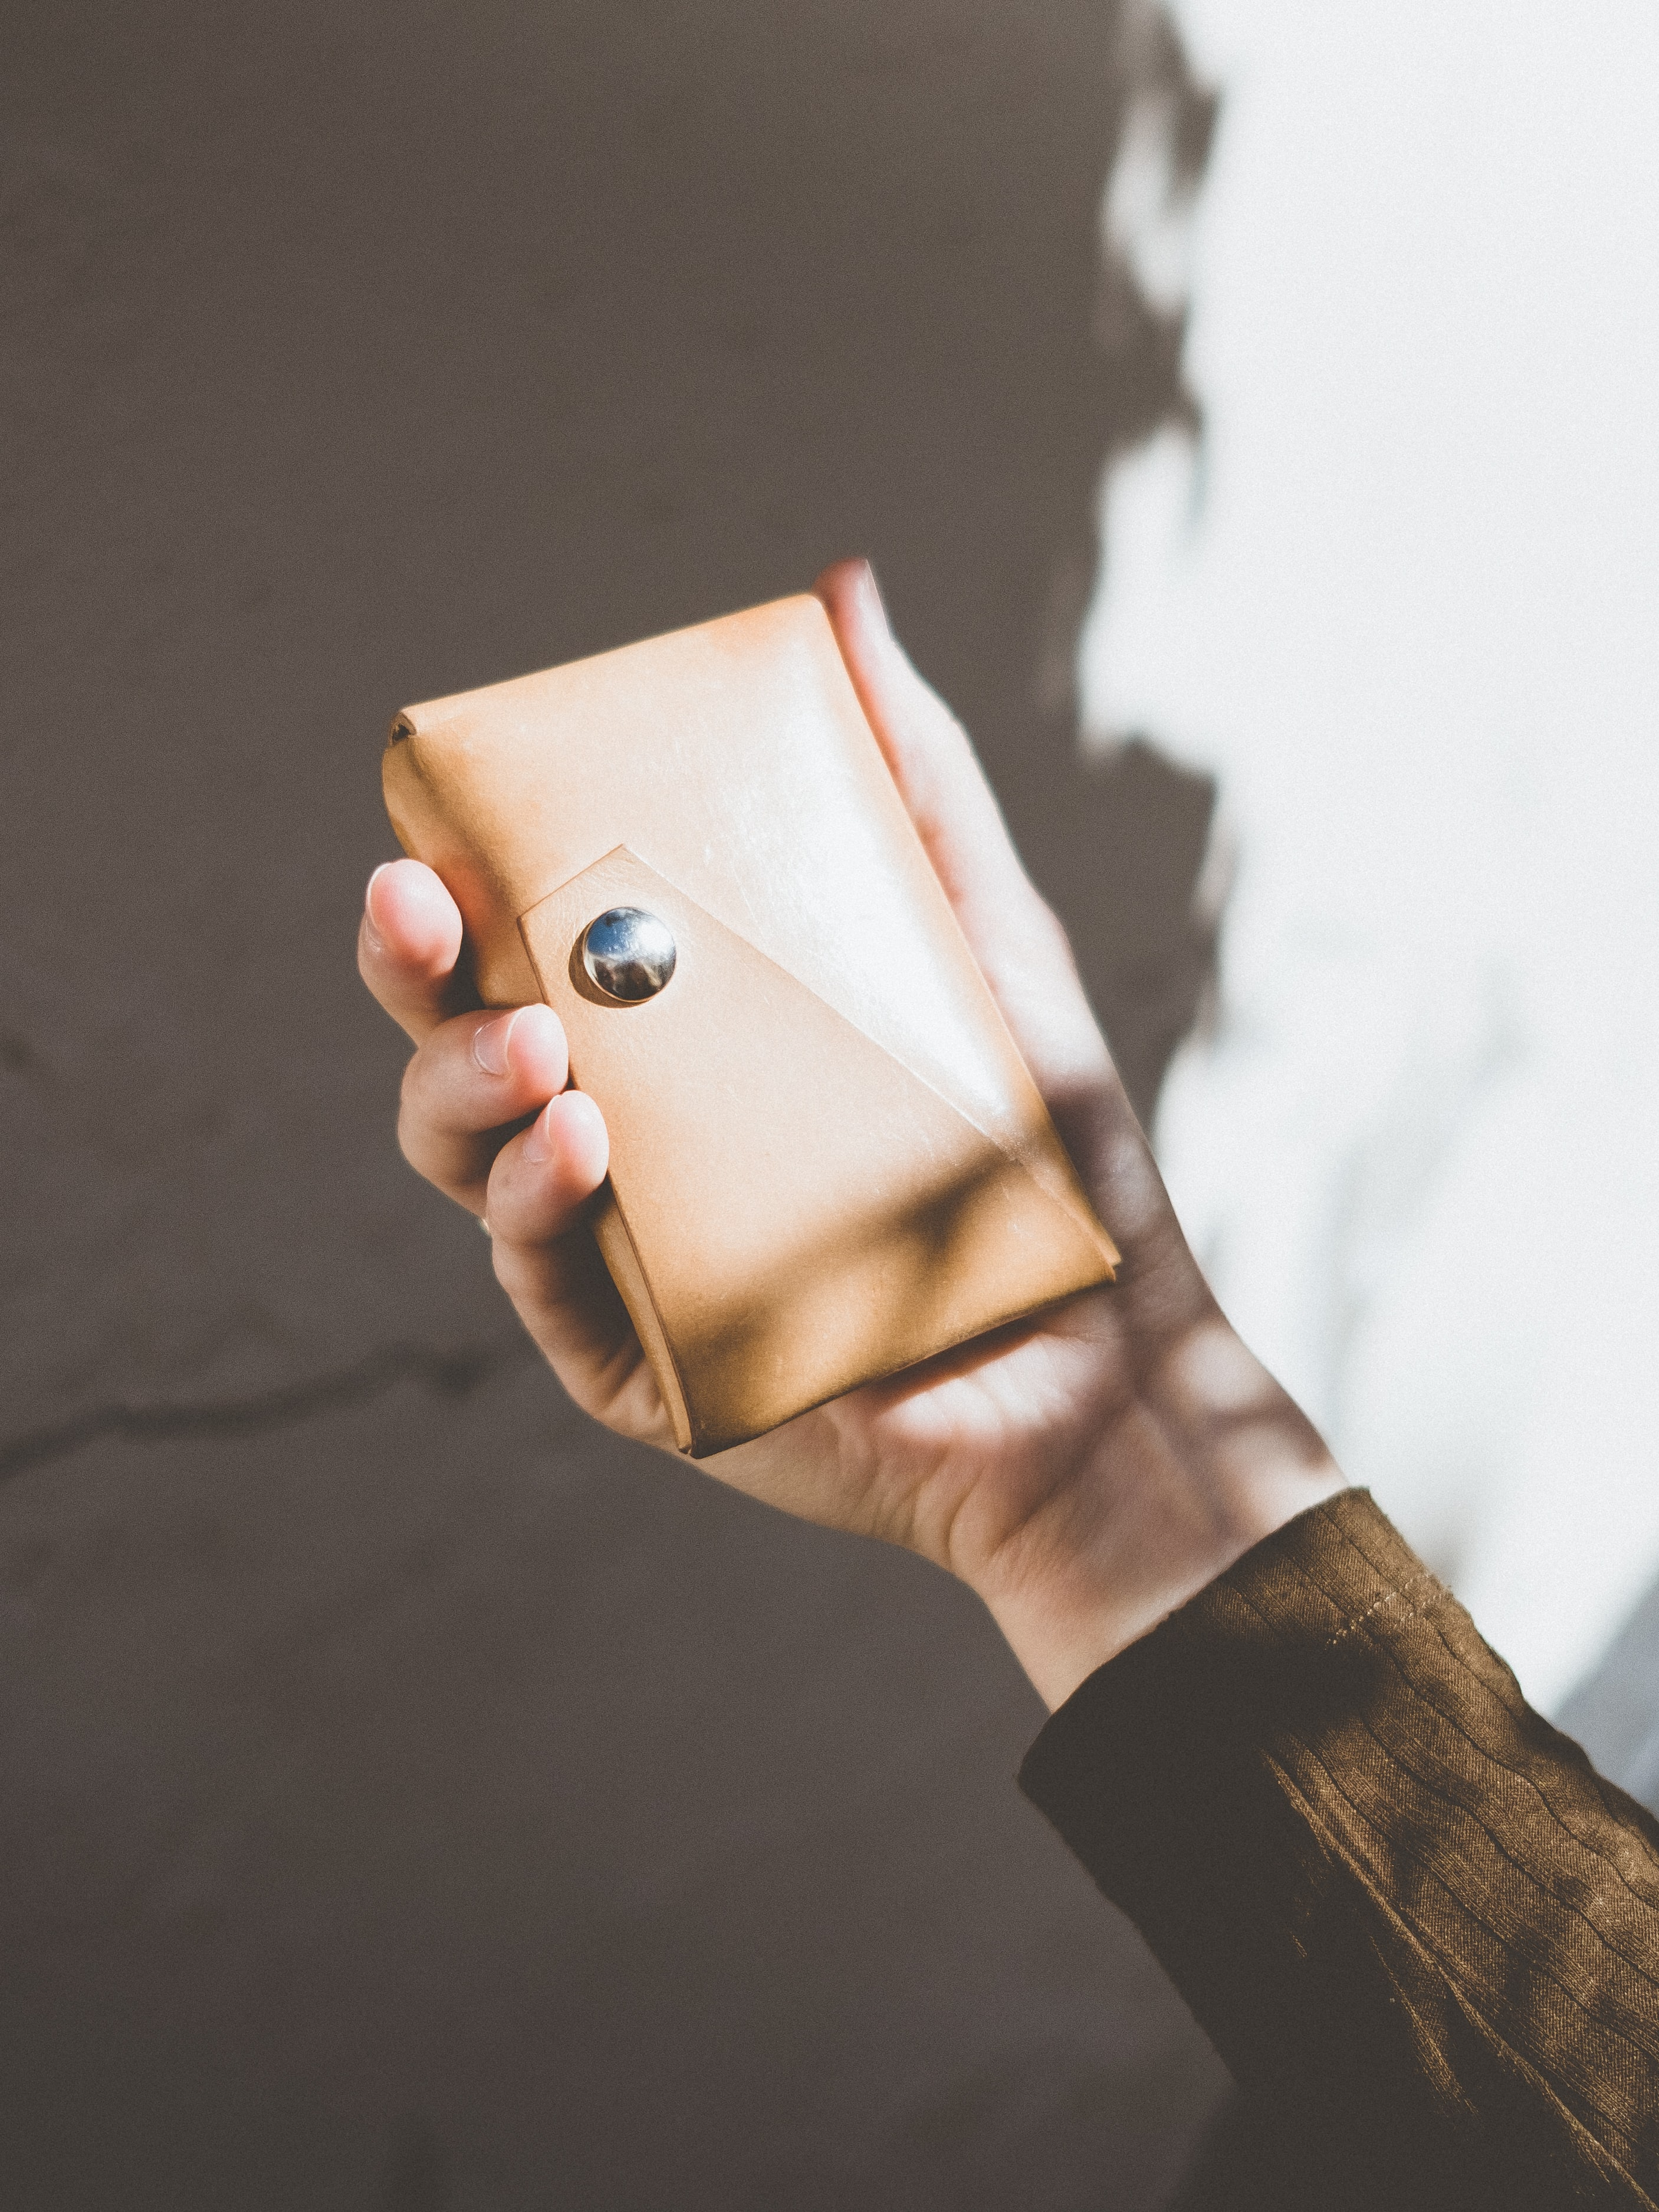 person in brown long-sleeved shirt holding brown leather case